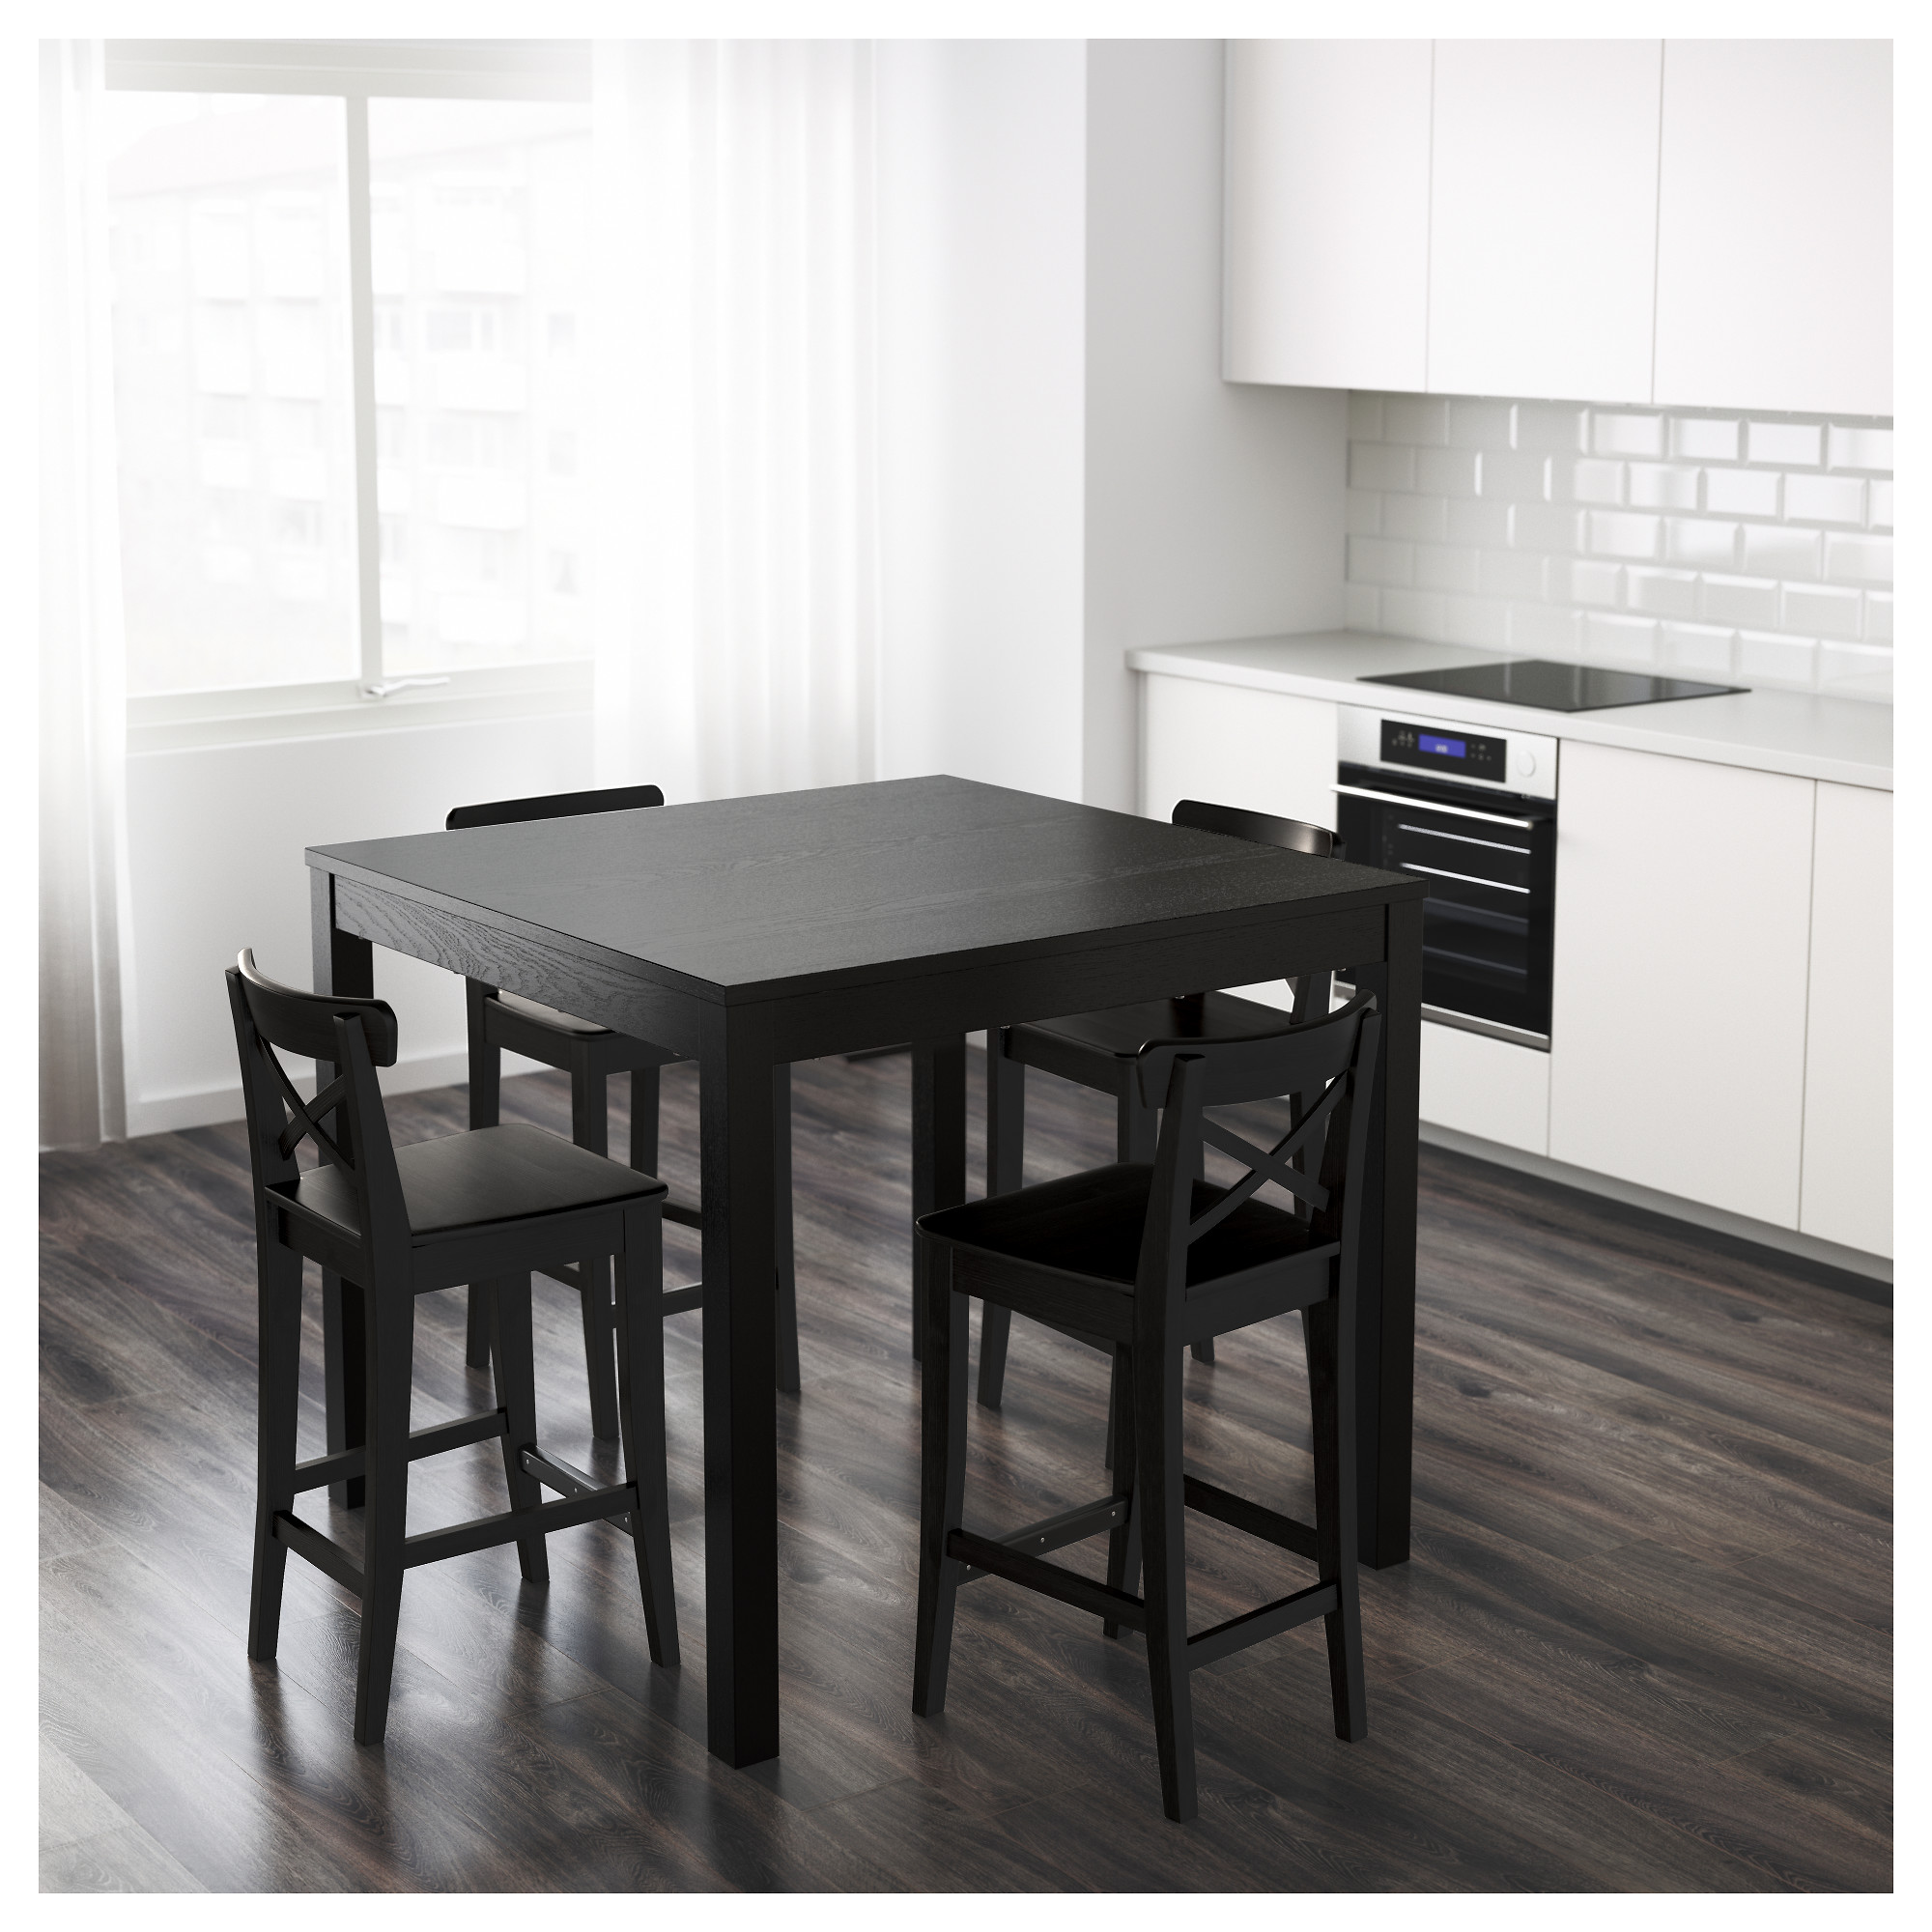 Table haute mange debout ikea with table haute mange for Table haute cuisine mange debout